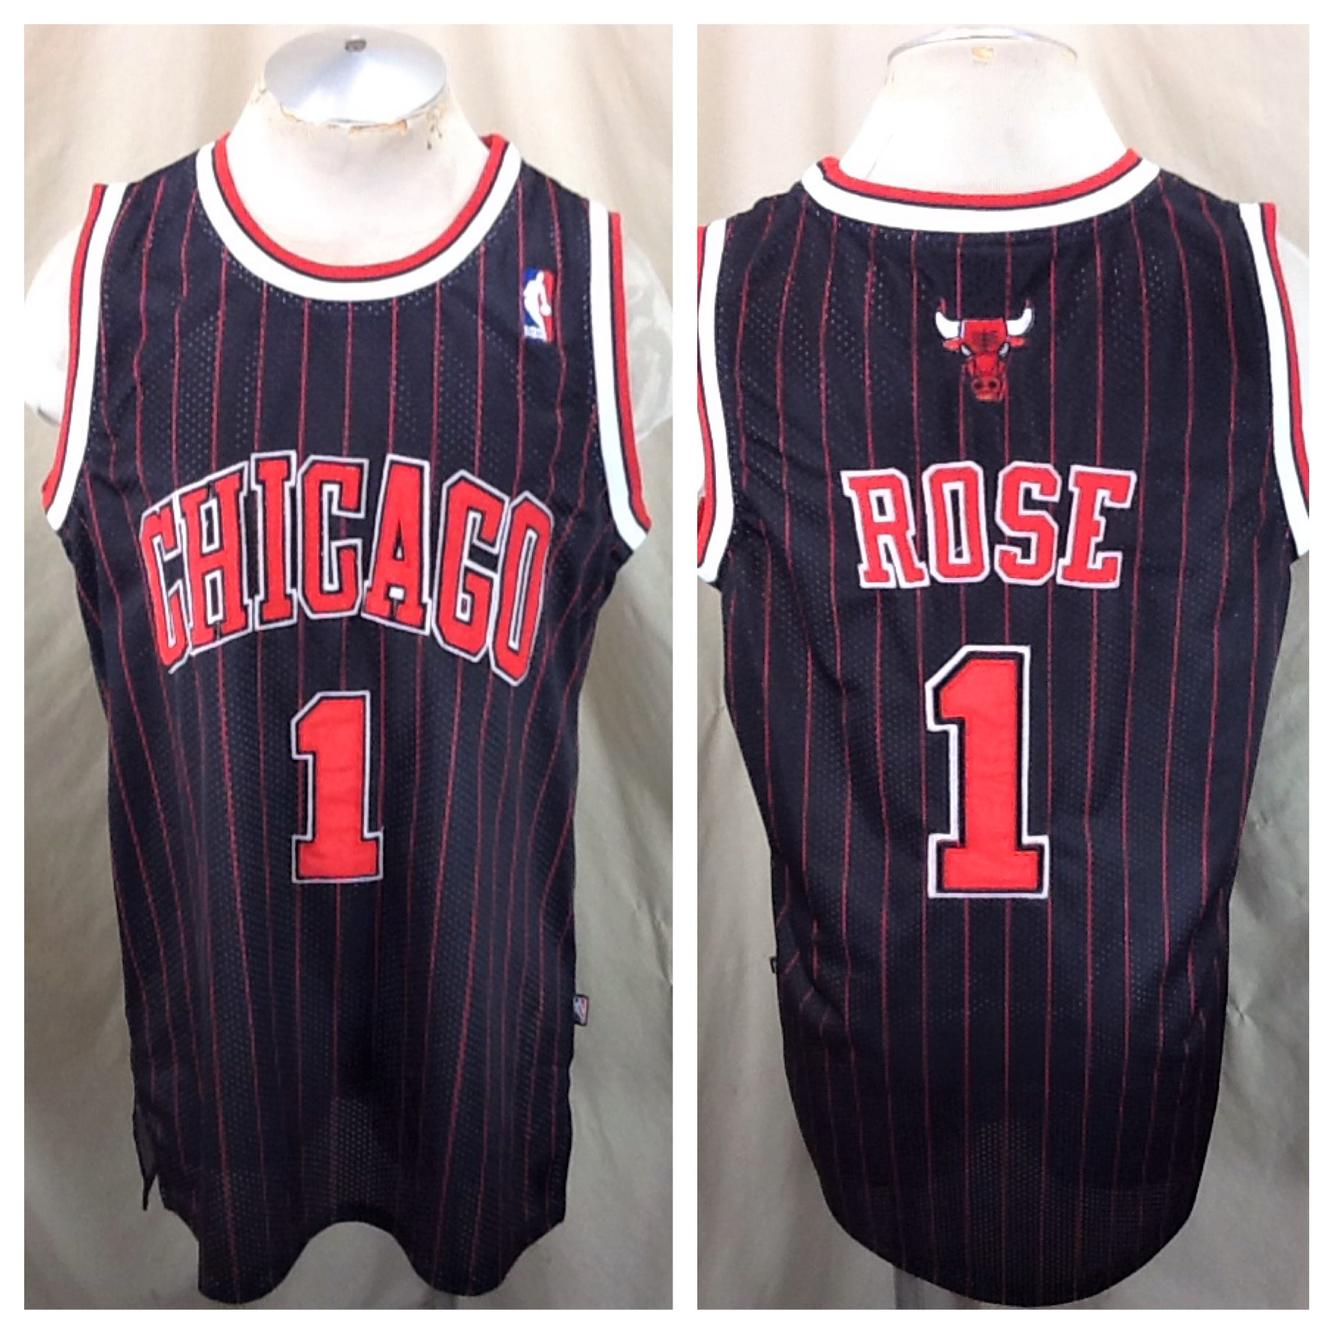 Quickly carbohydrate juice  Nike Vintage Chicago Bulls Derrick Rose #1 (48/Med) Retro NBA Stitched  Jersey | Basketball Apparel & Jerseys